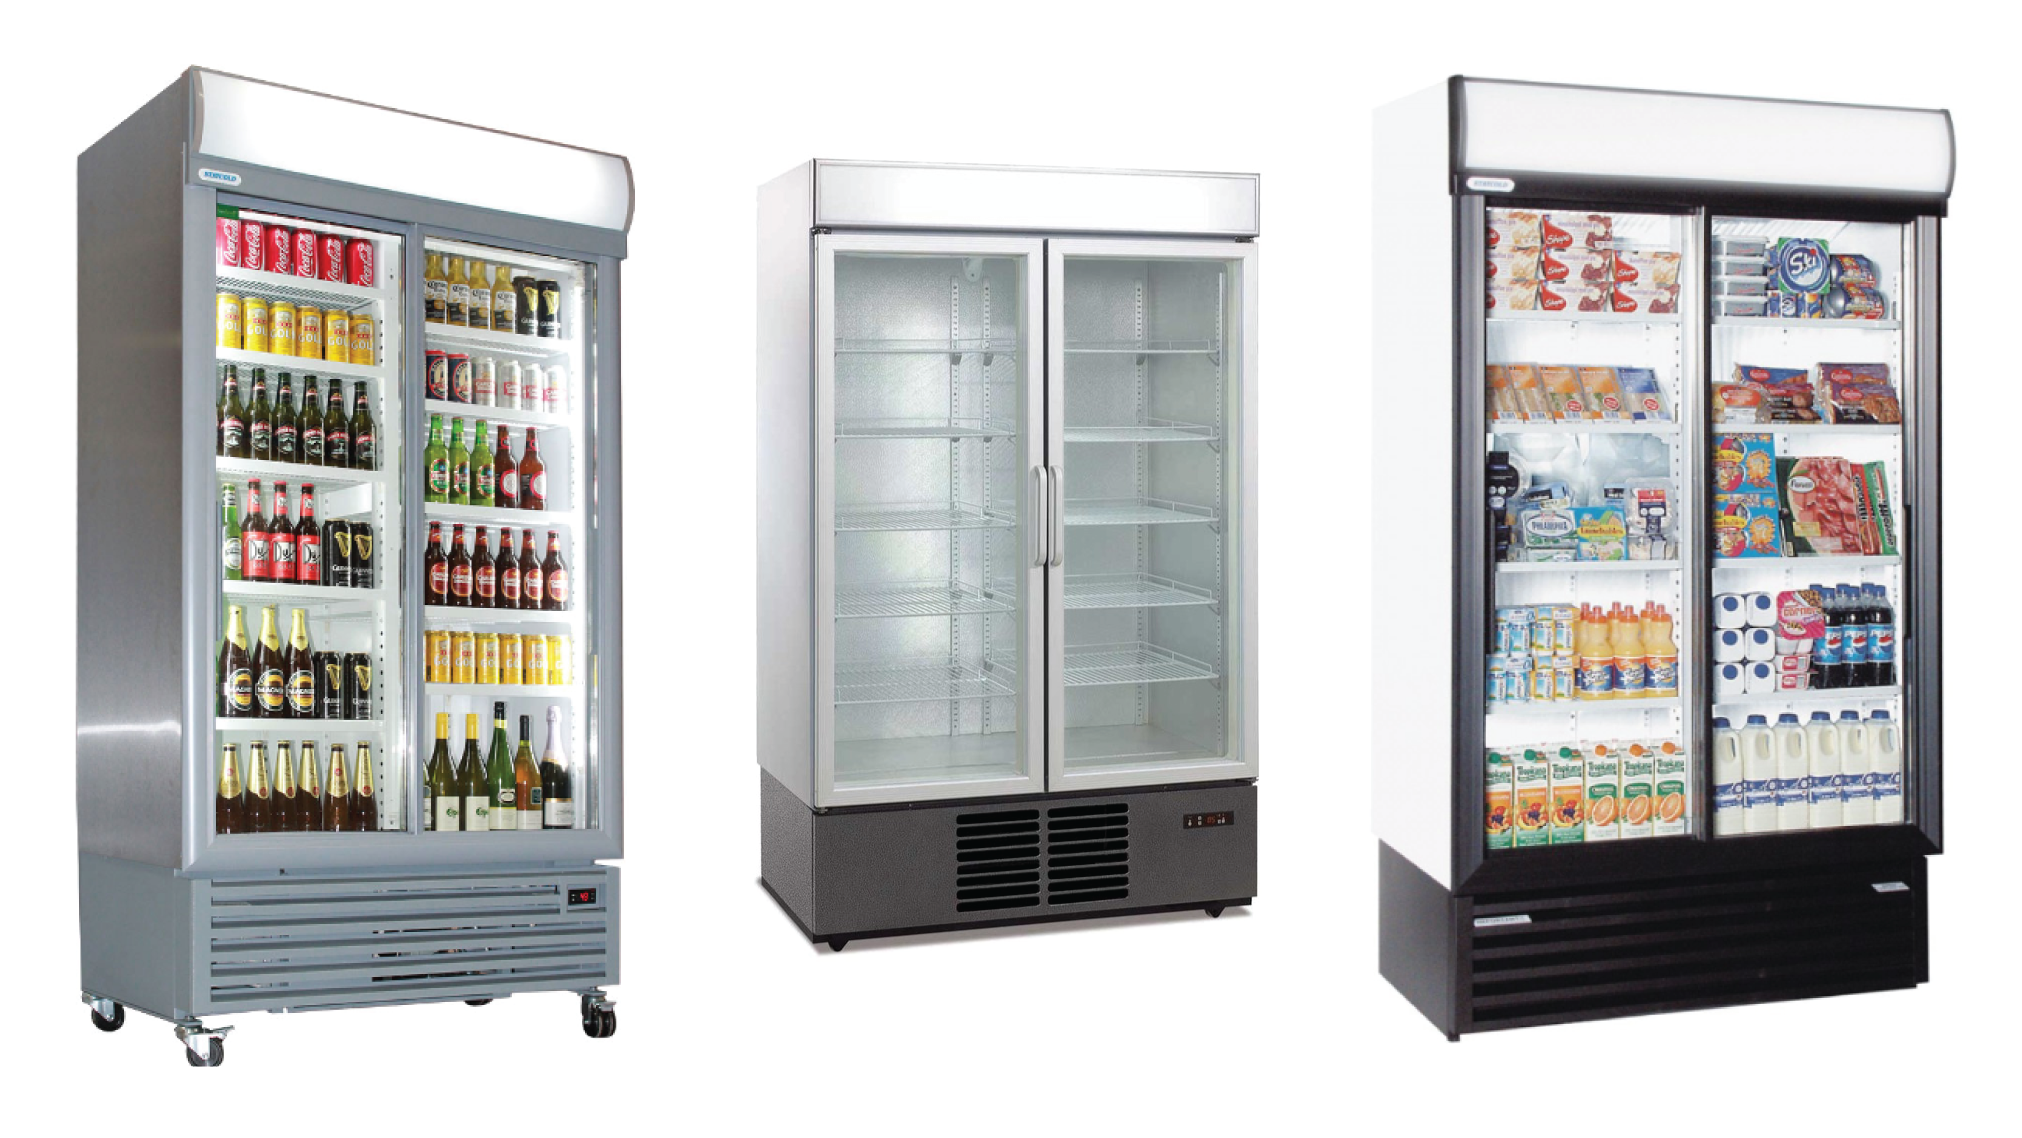 Double Glass Door Beverage Chiller in Bangladesh Call for Buy: 01611 ...